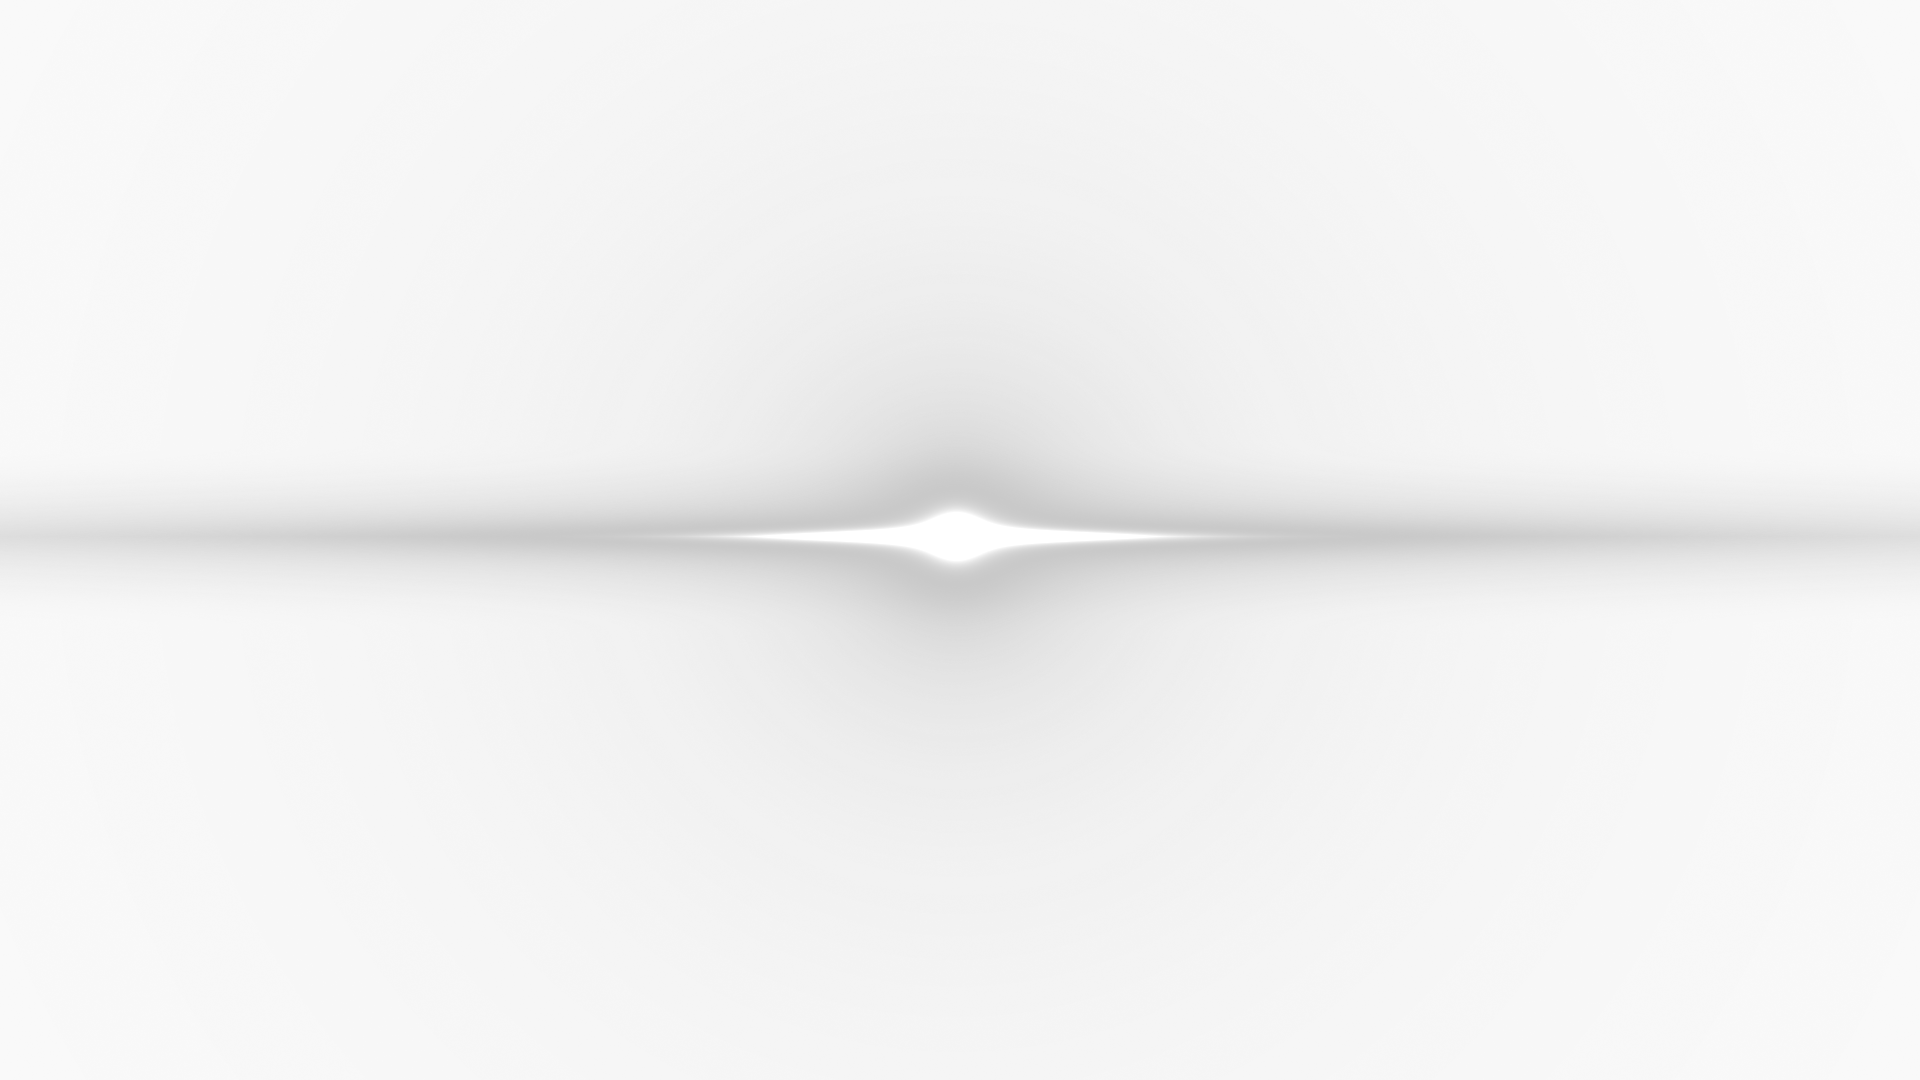 Png flare. White high quality image